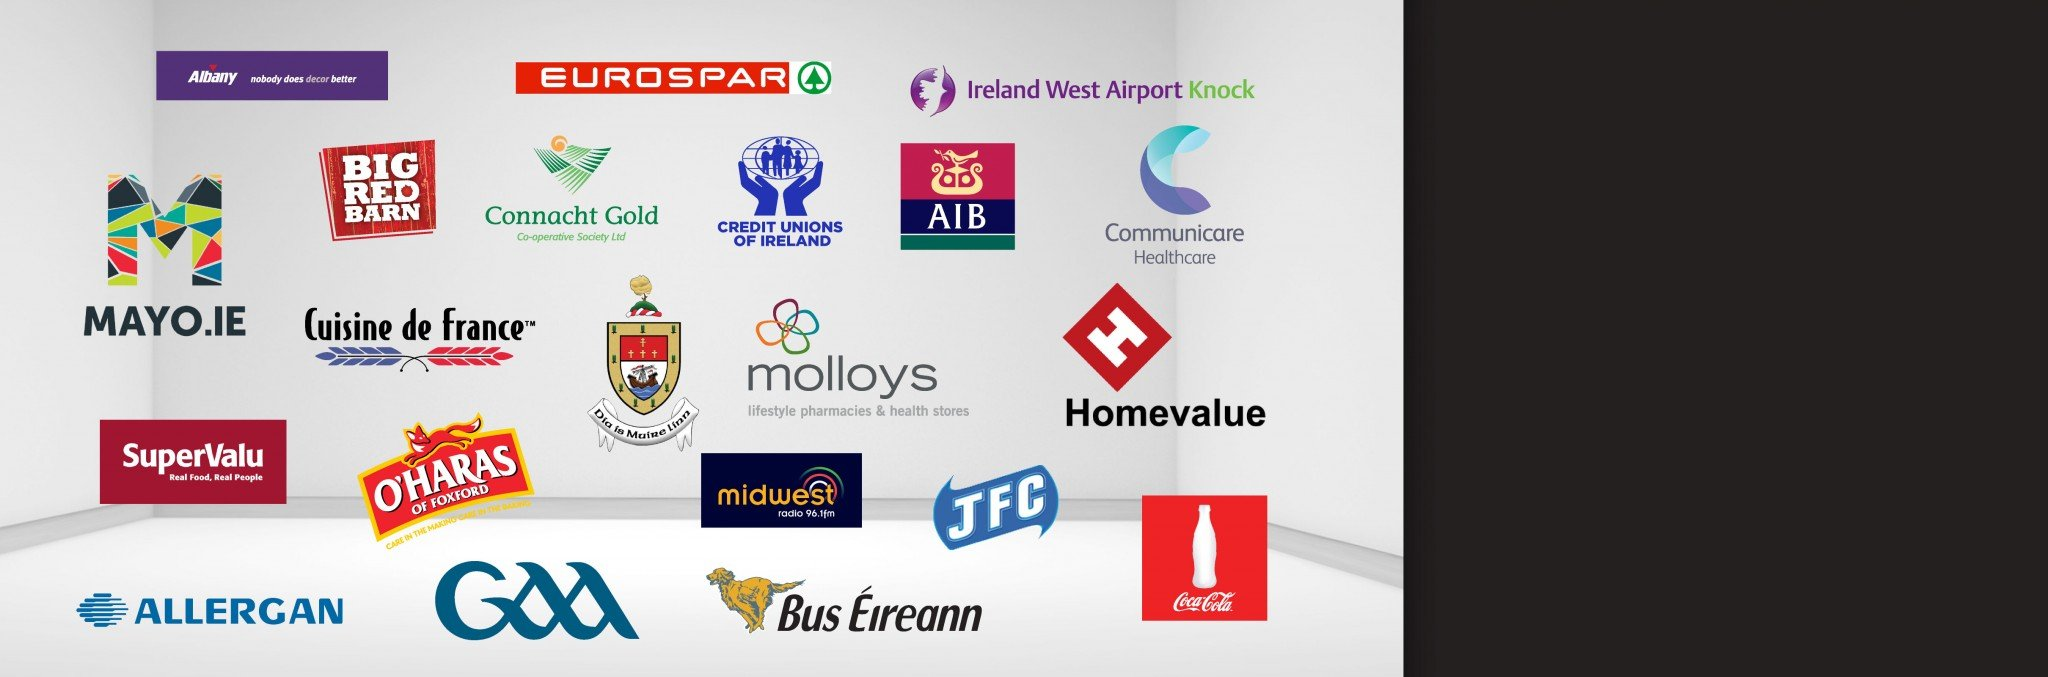 Signwest_Banner_All_Across_Ireland_Without_Text-o